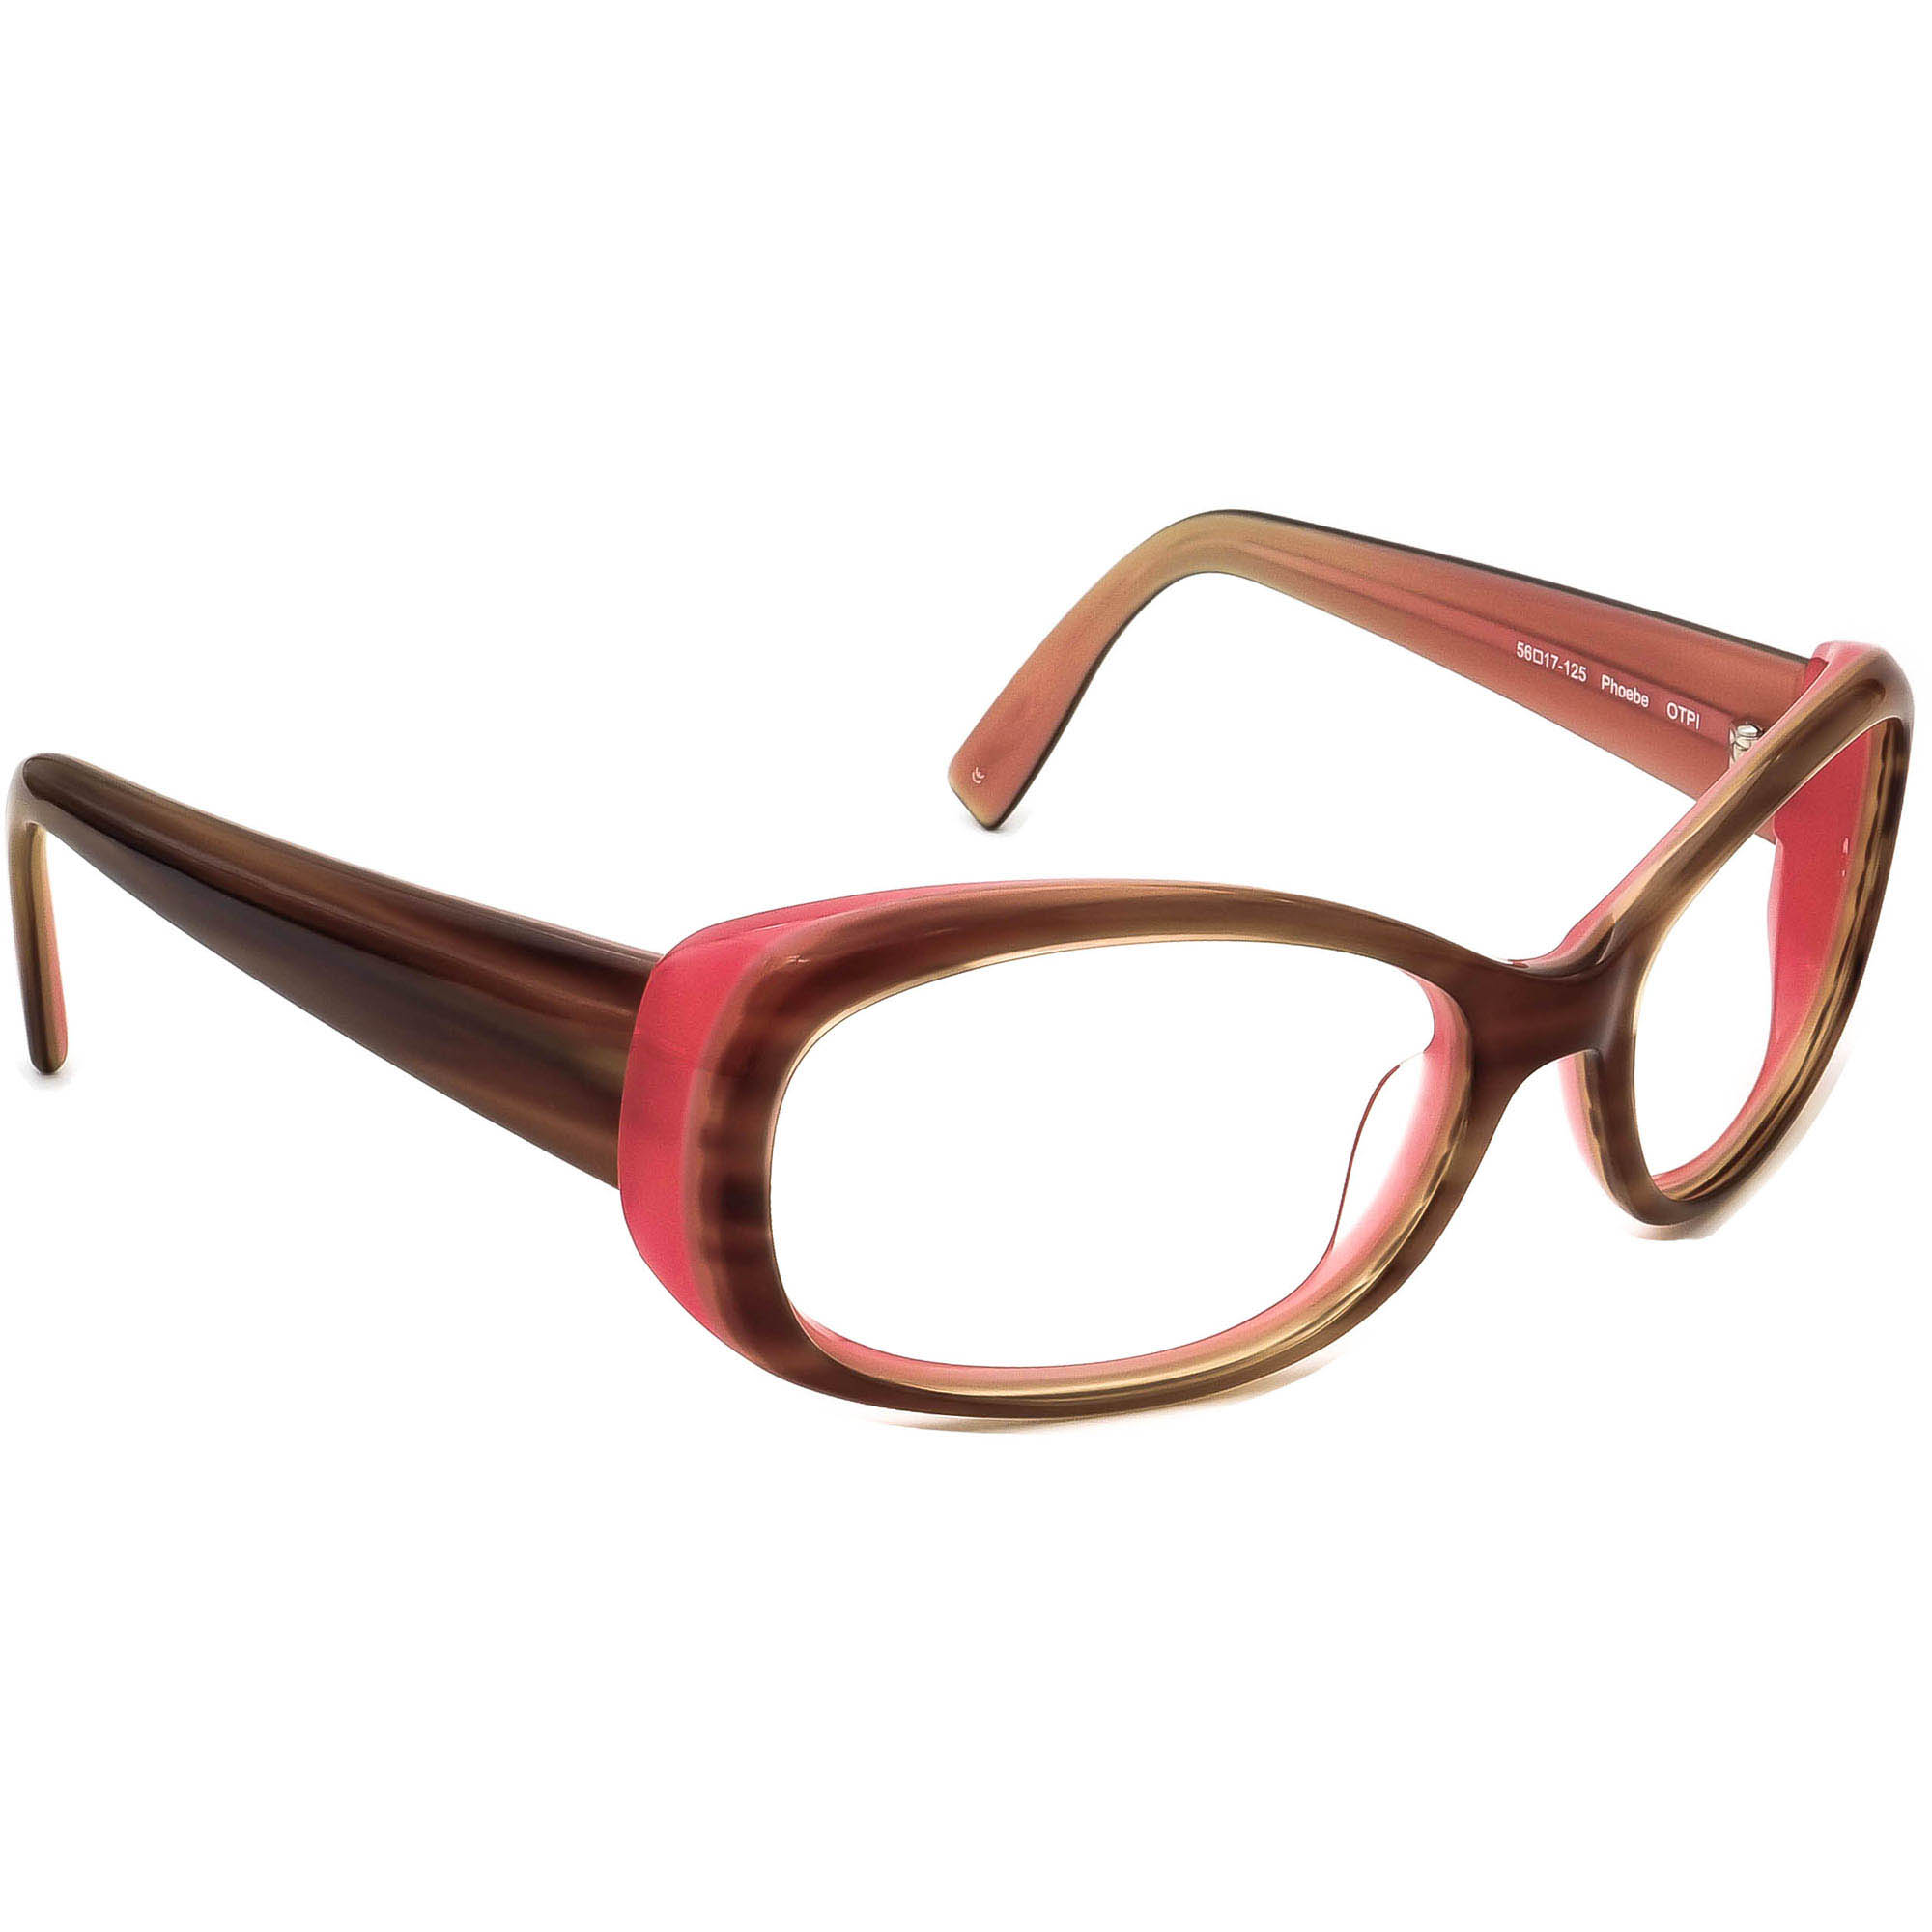 Oliver Peoples Phoebe OTPI Sunglasses Frame Only